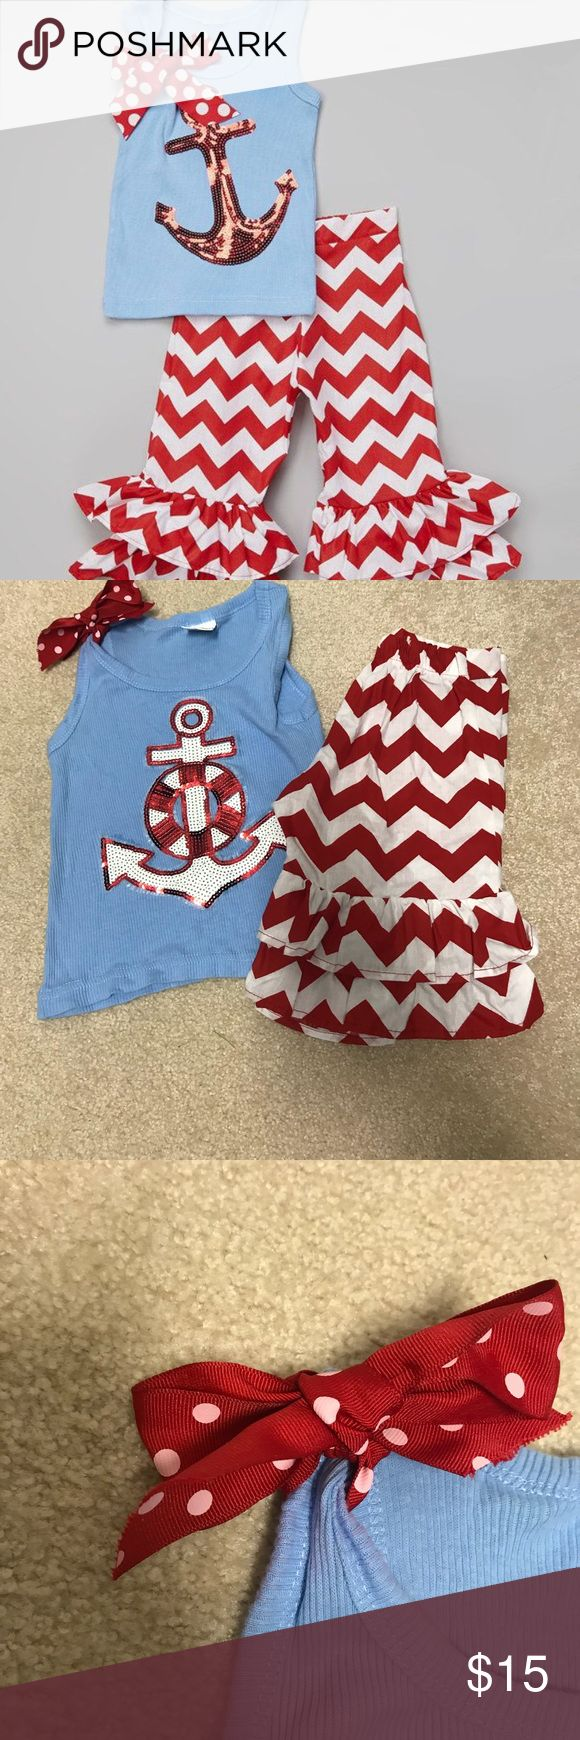 Girls Anchor Outfit *see real photos for Anchor, stock photo slightly different* Gently used Only worn twice Matching Sets